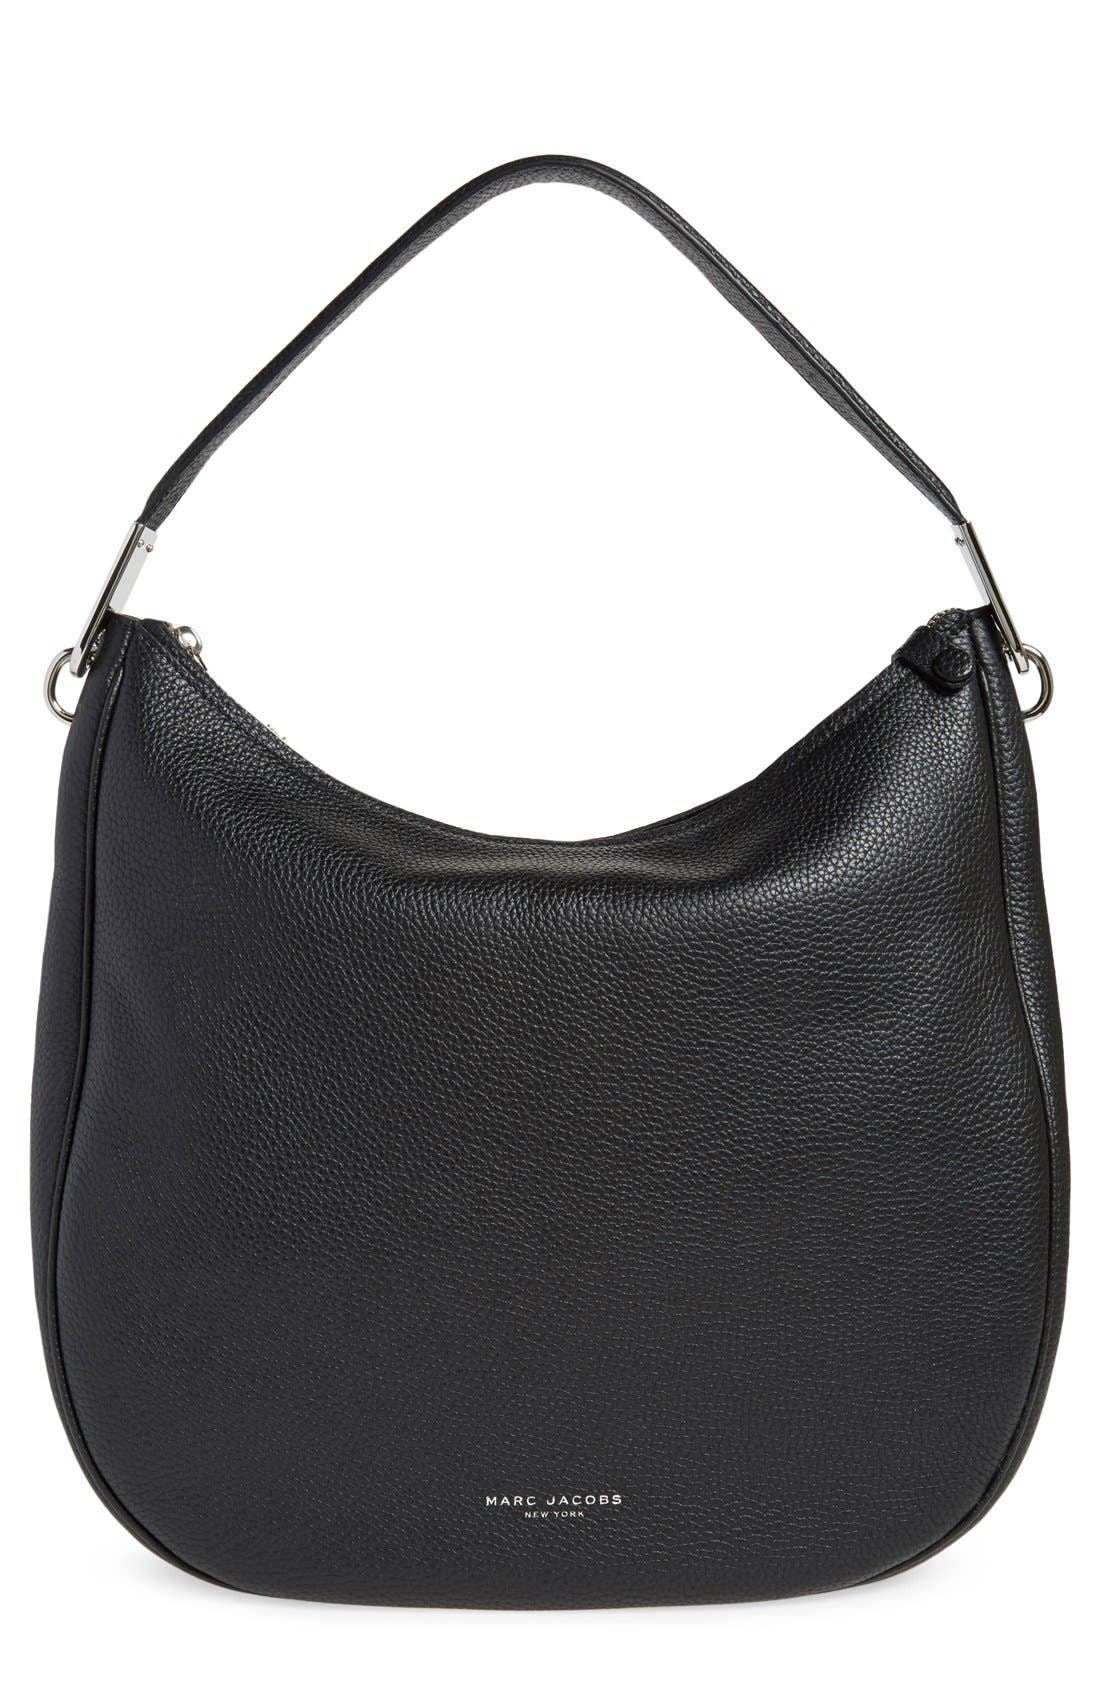 MARC JACOBS 'Pike Place' Leather Hobo, Main, color, 001